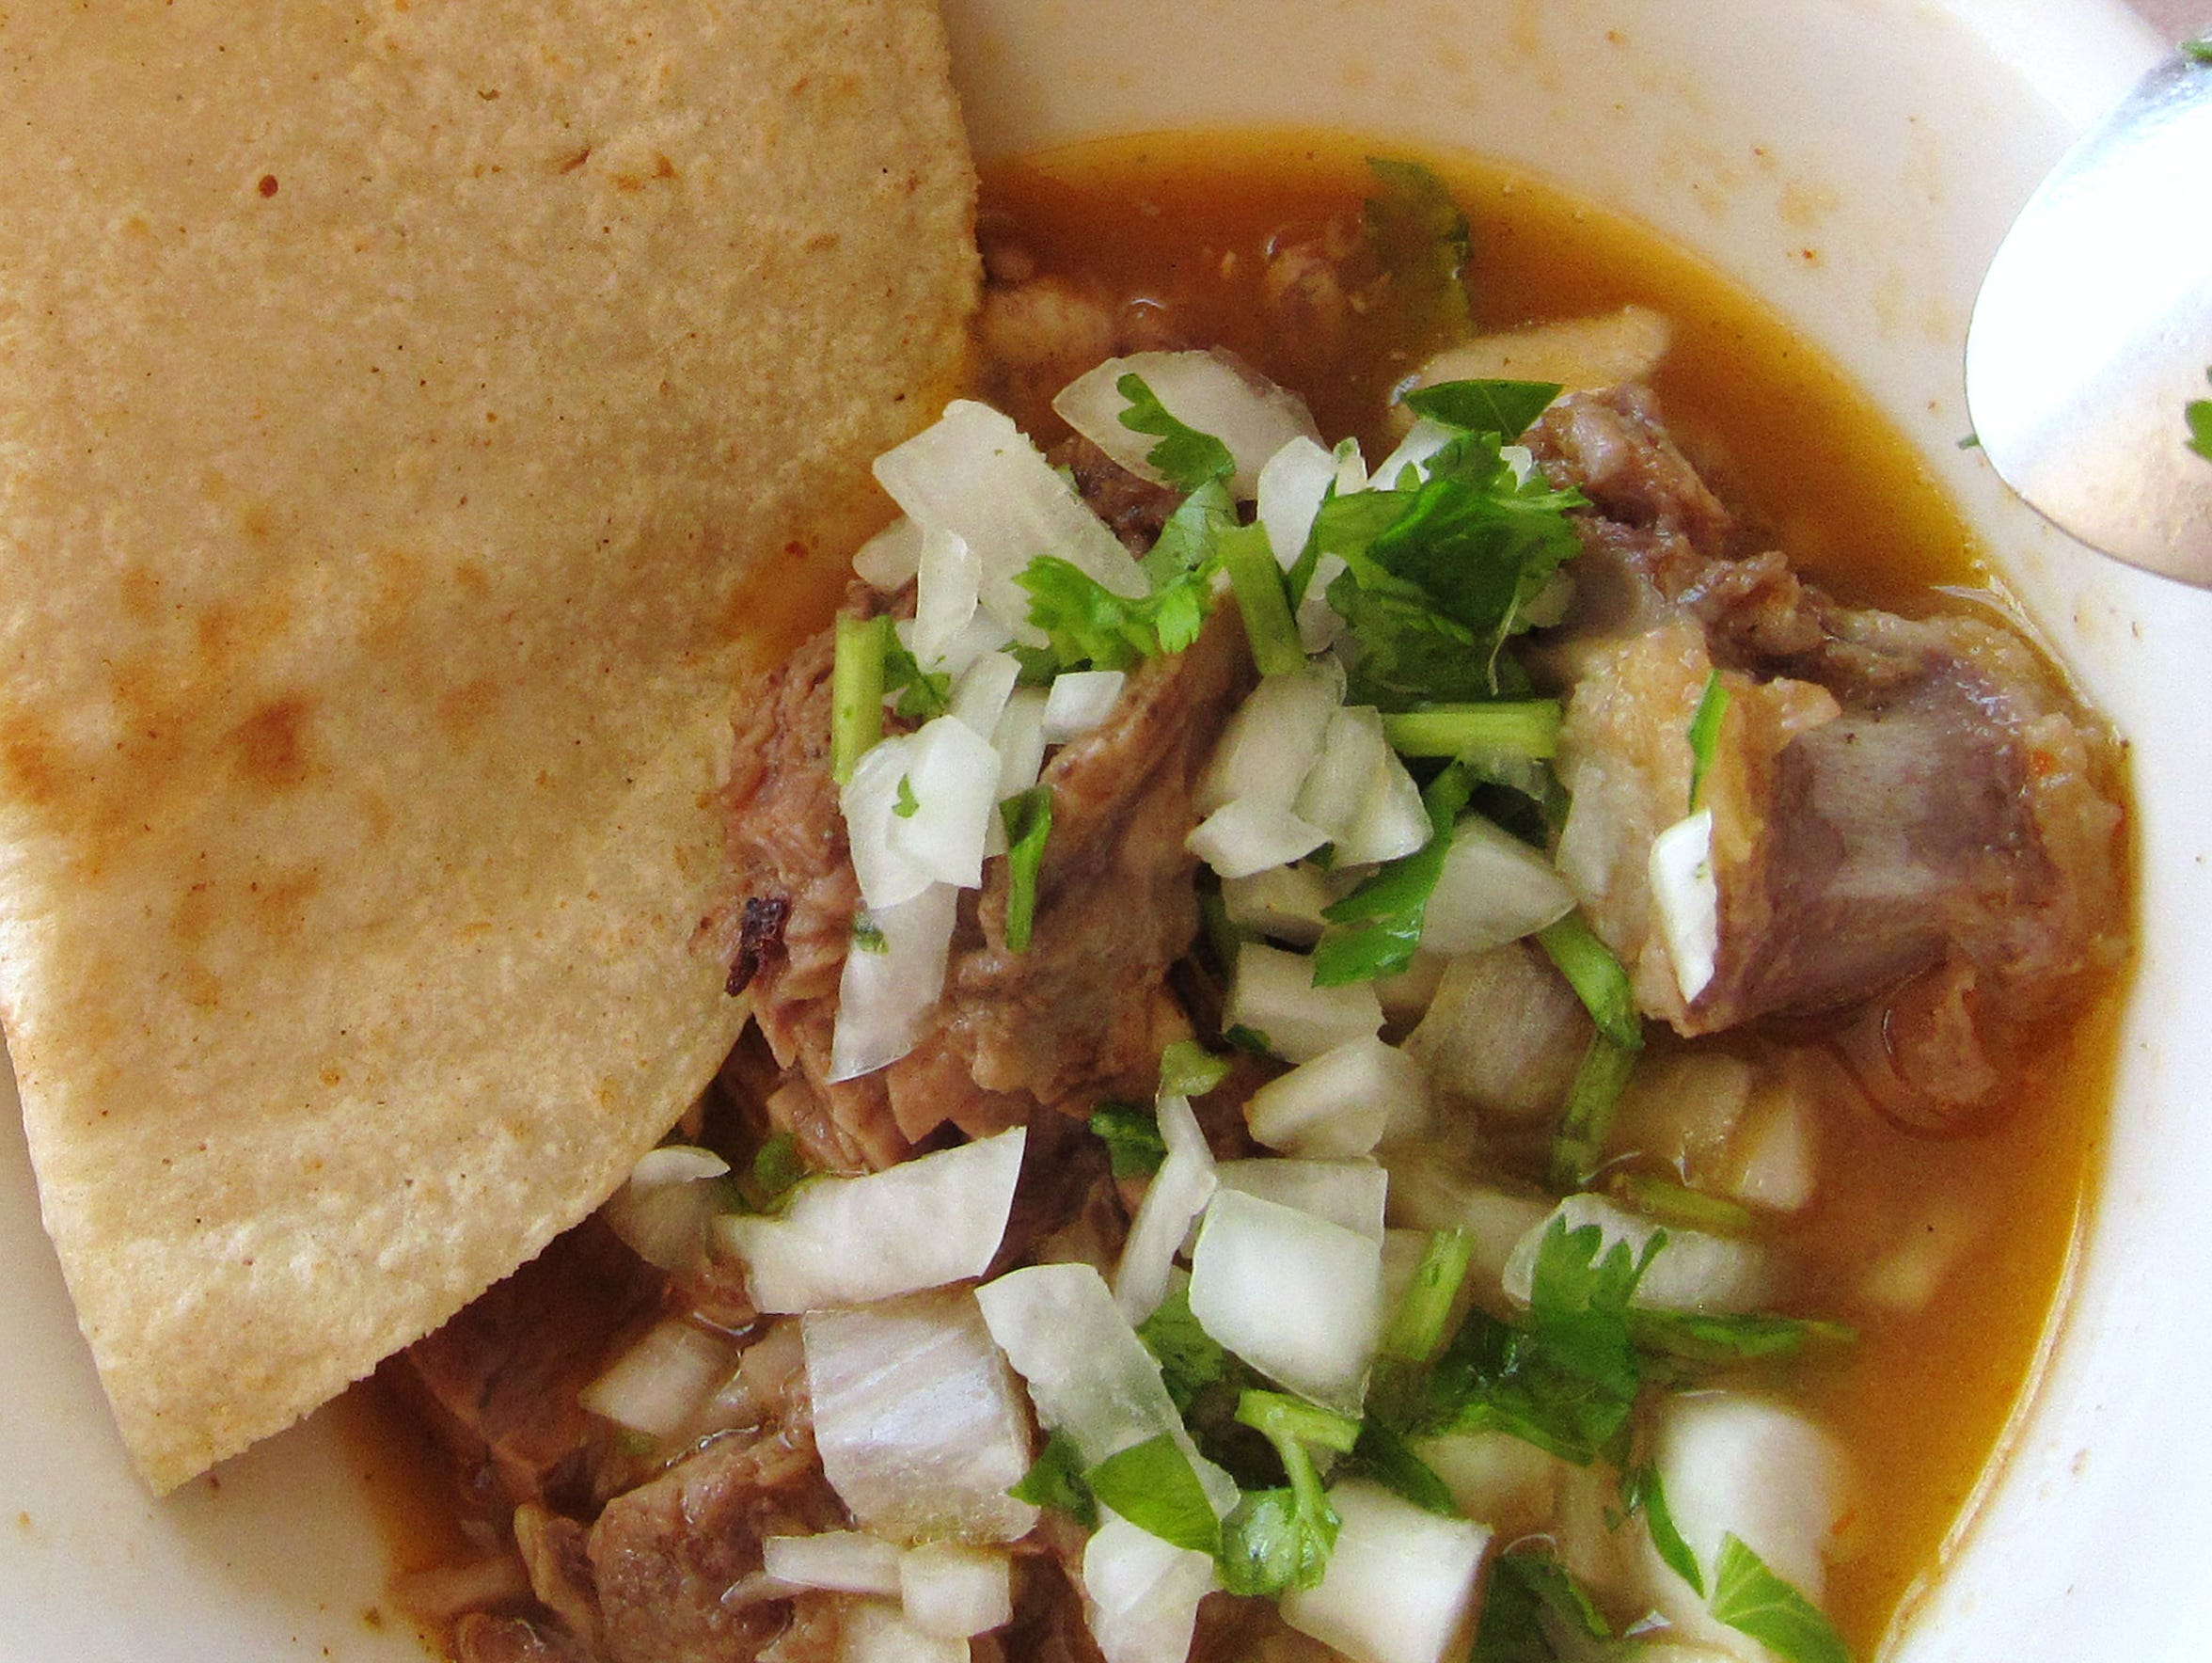 Horseshoe's birria is mild-mannered, but it has its